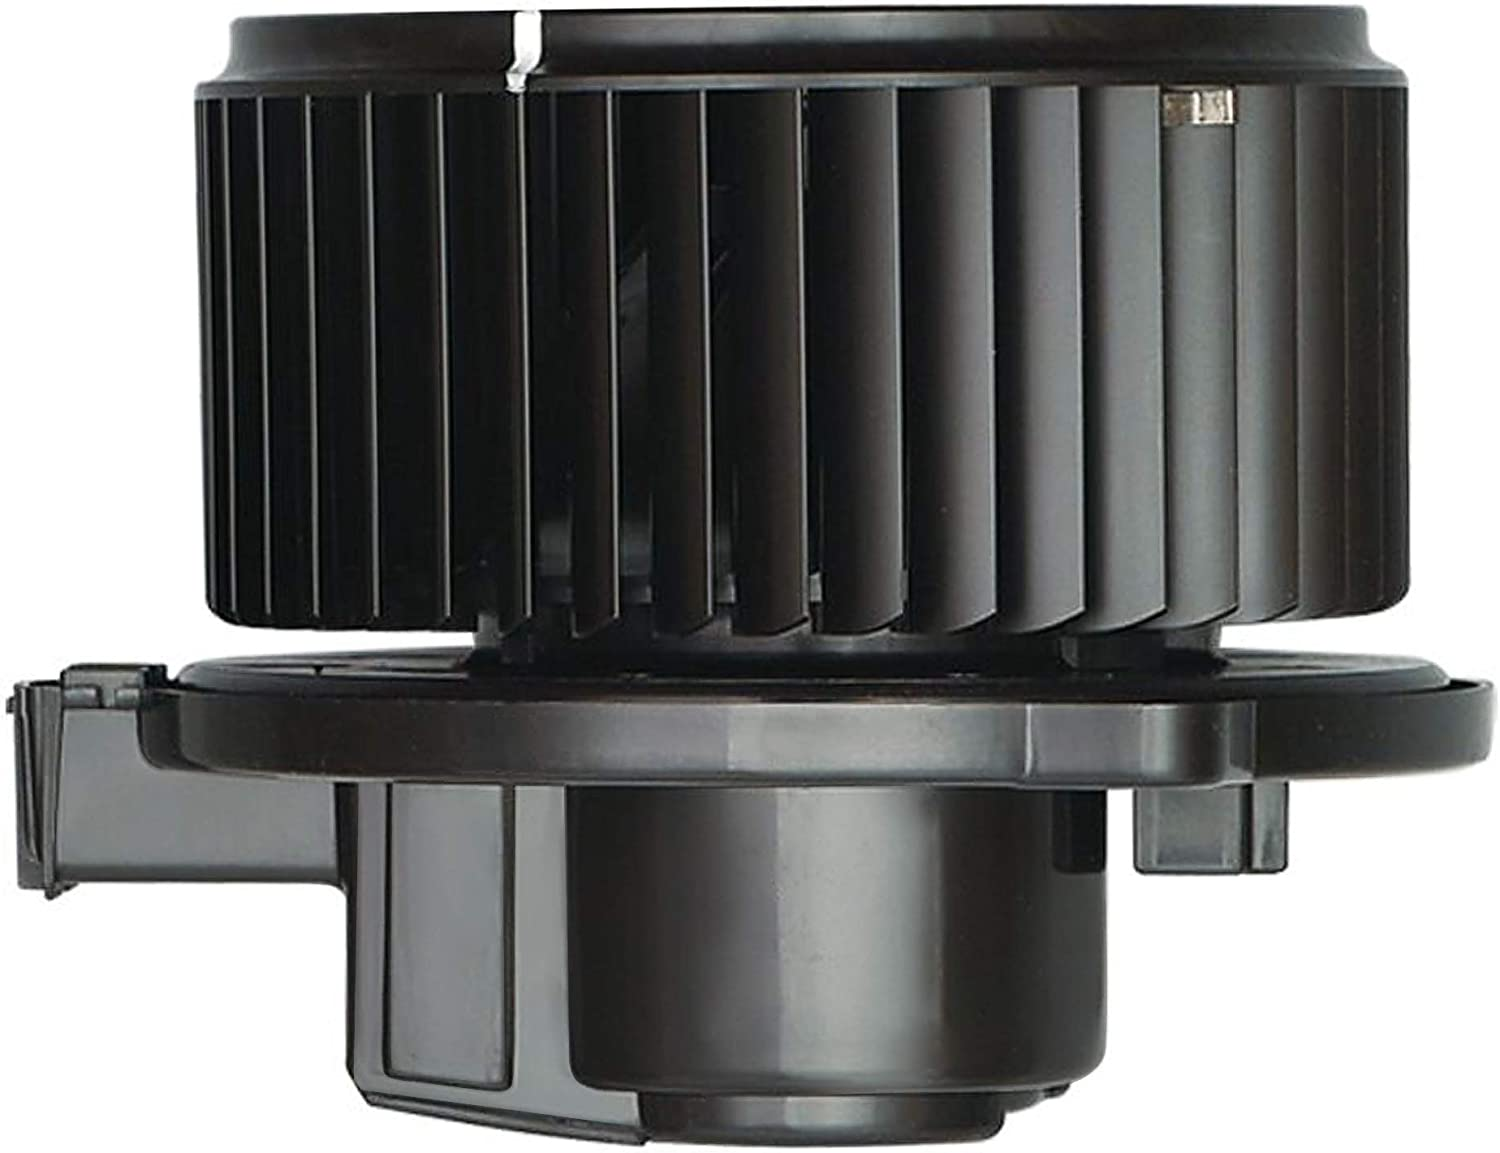 BRAND NEW BLOWER MOTOR WITH FAN CAGE FOR ACURA MDX HONDA ODYSSEY ACCORD PILOT